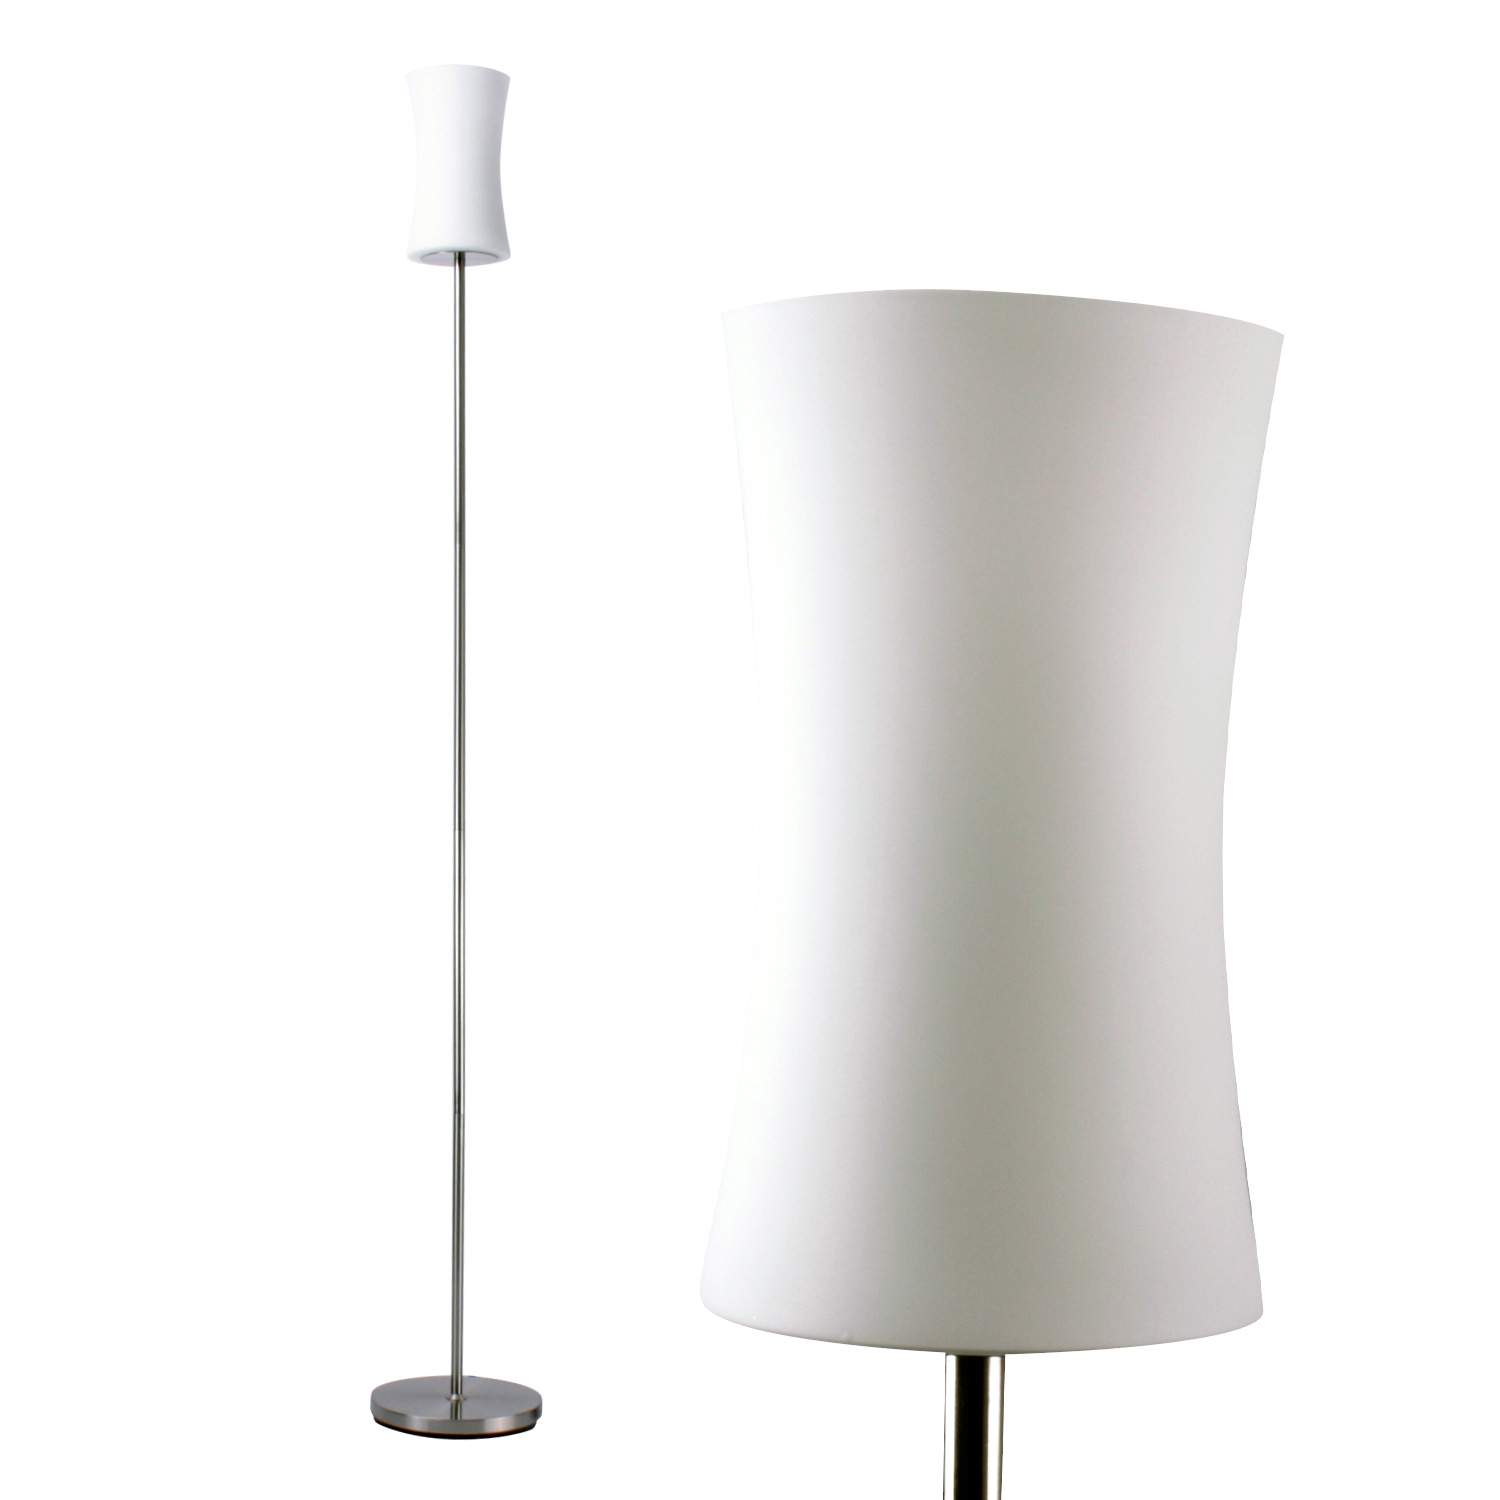 100 murano glass floor lamps birdie floor lamp hivemodern c